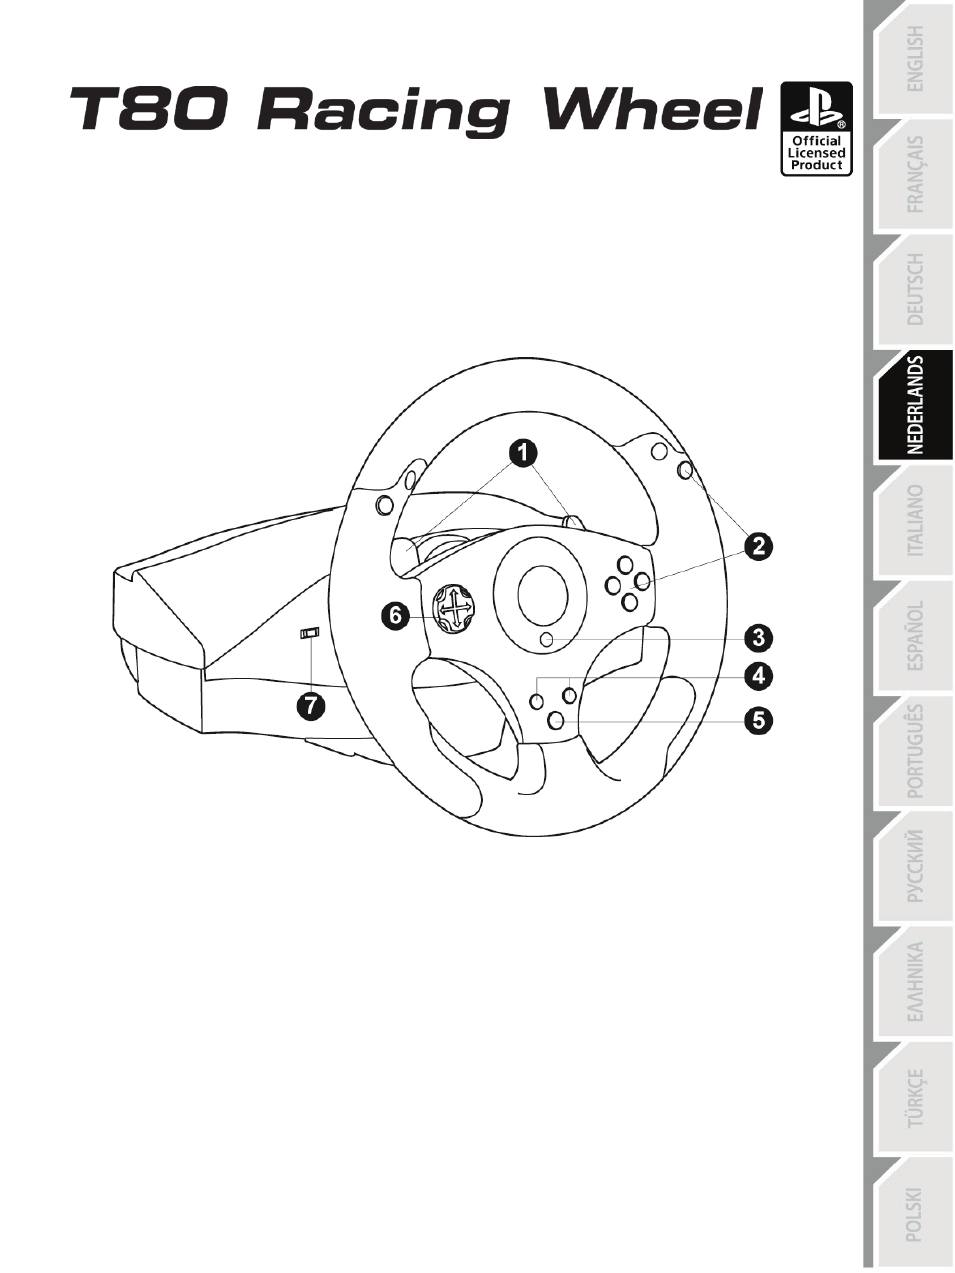 04_ned_t80_racing_wheel, Technische specificaties